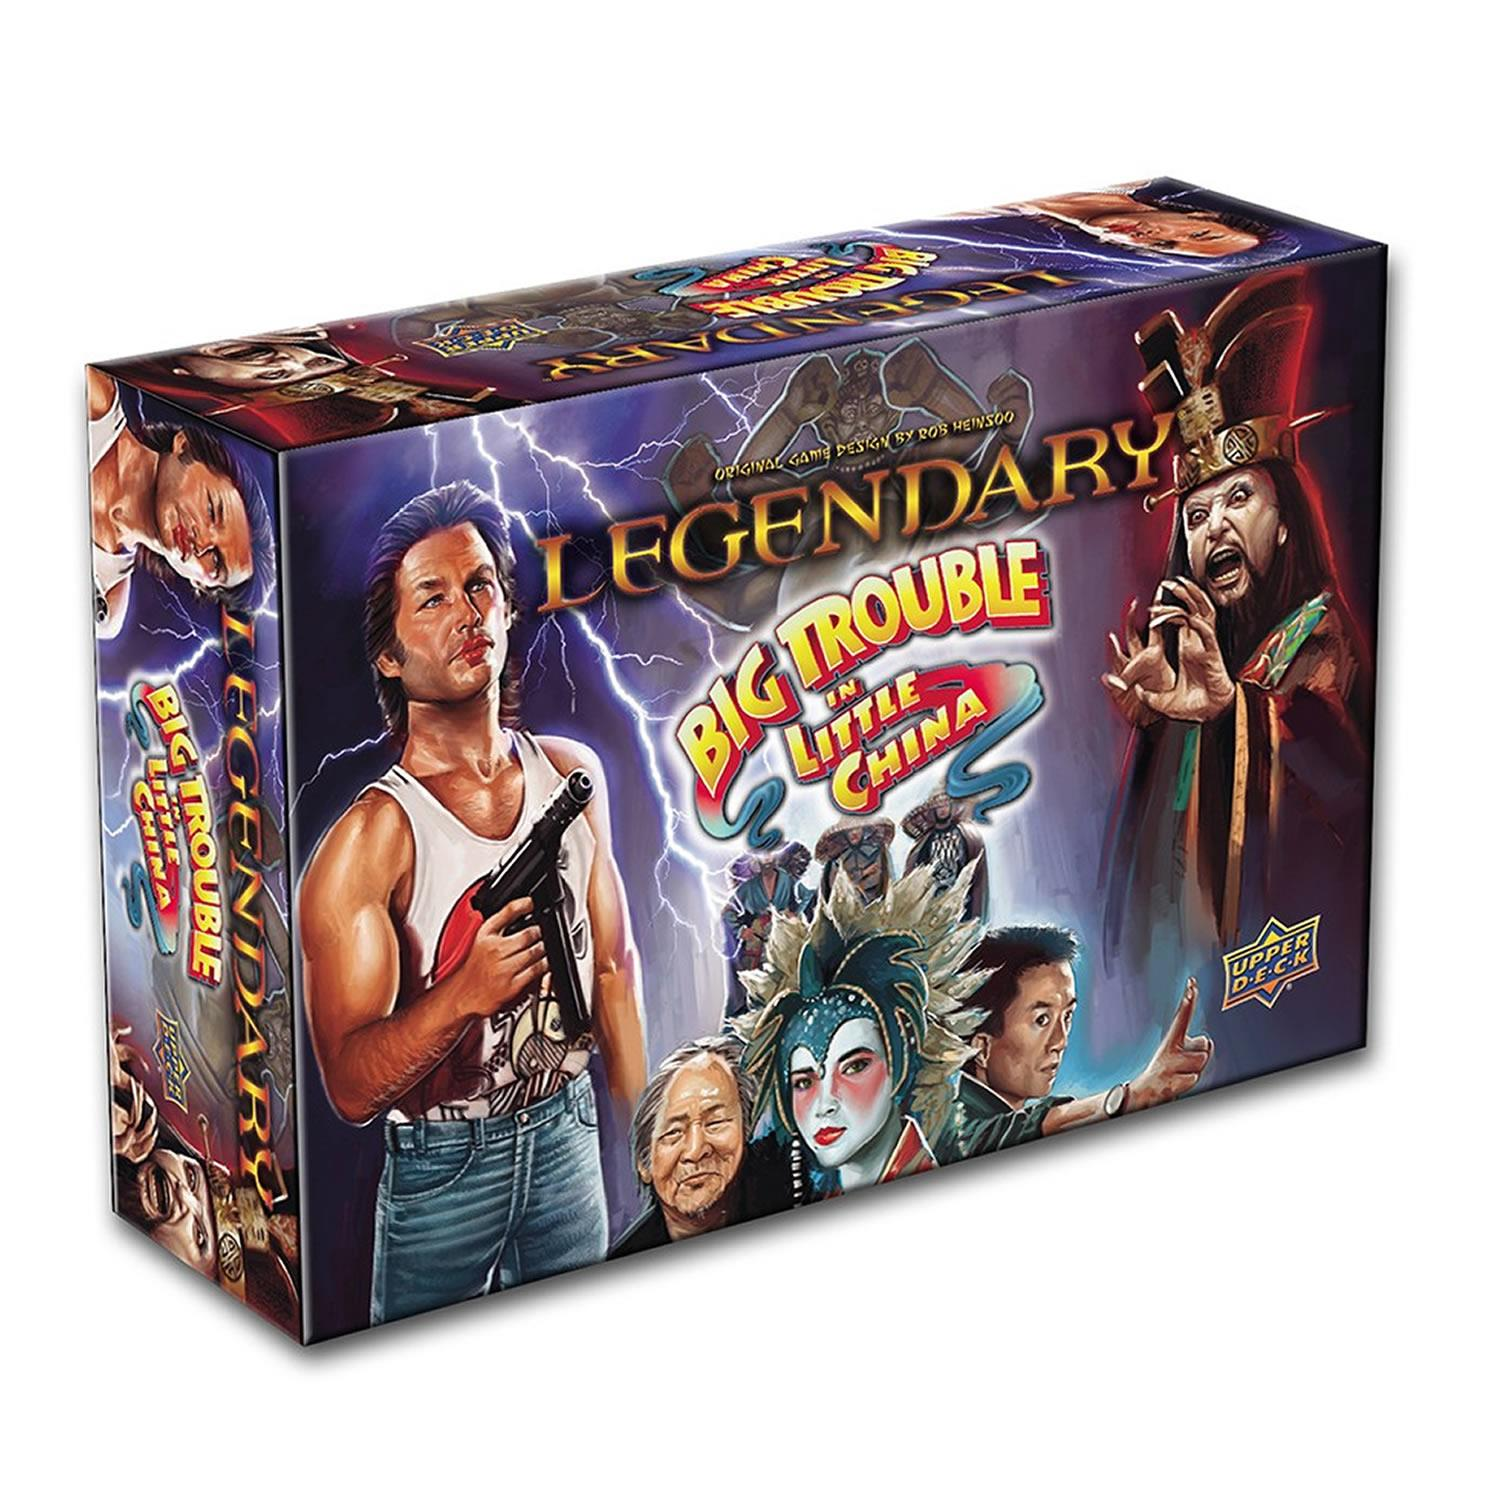 Legendary: Big Trouble in Little China Legendary Board Game The Upper Deck Company UPR84774